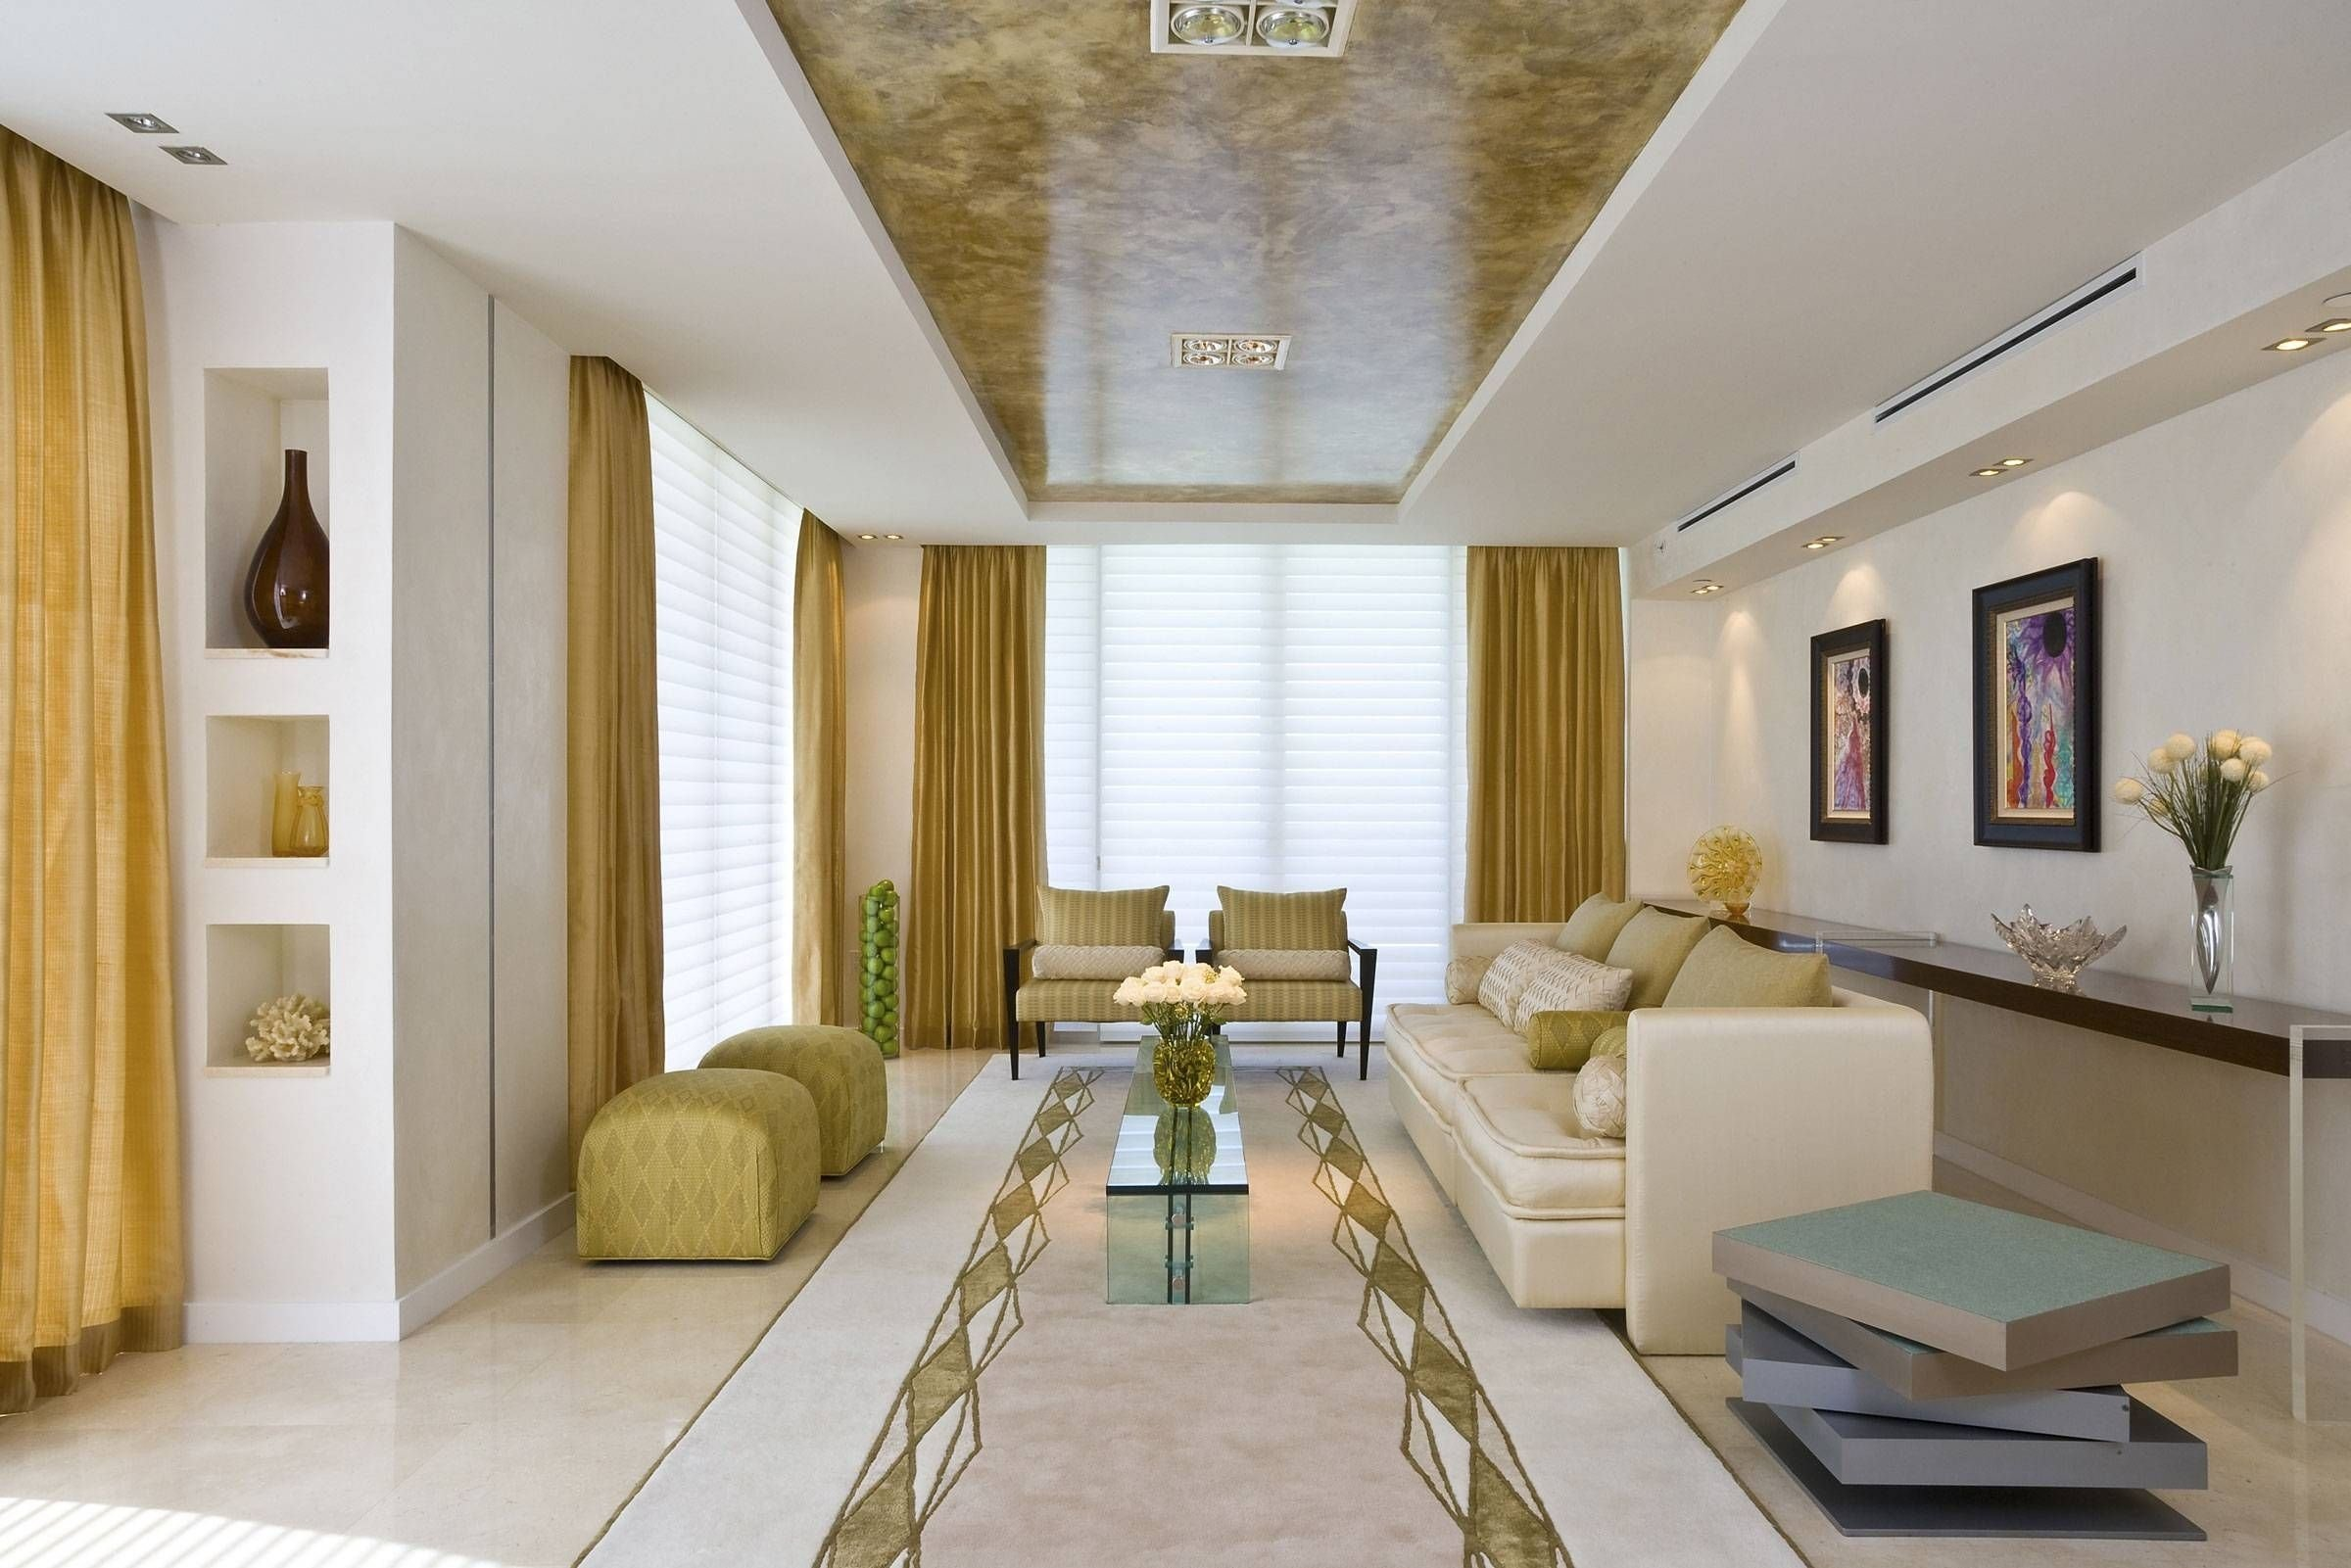 10 Most Recommended Long Living Room Design Ideas color palette perfect artistic for long living room design ideas 1 2021